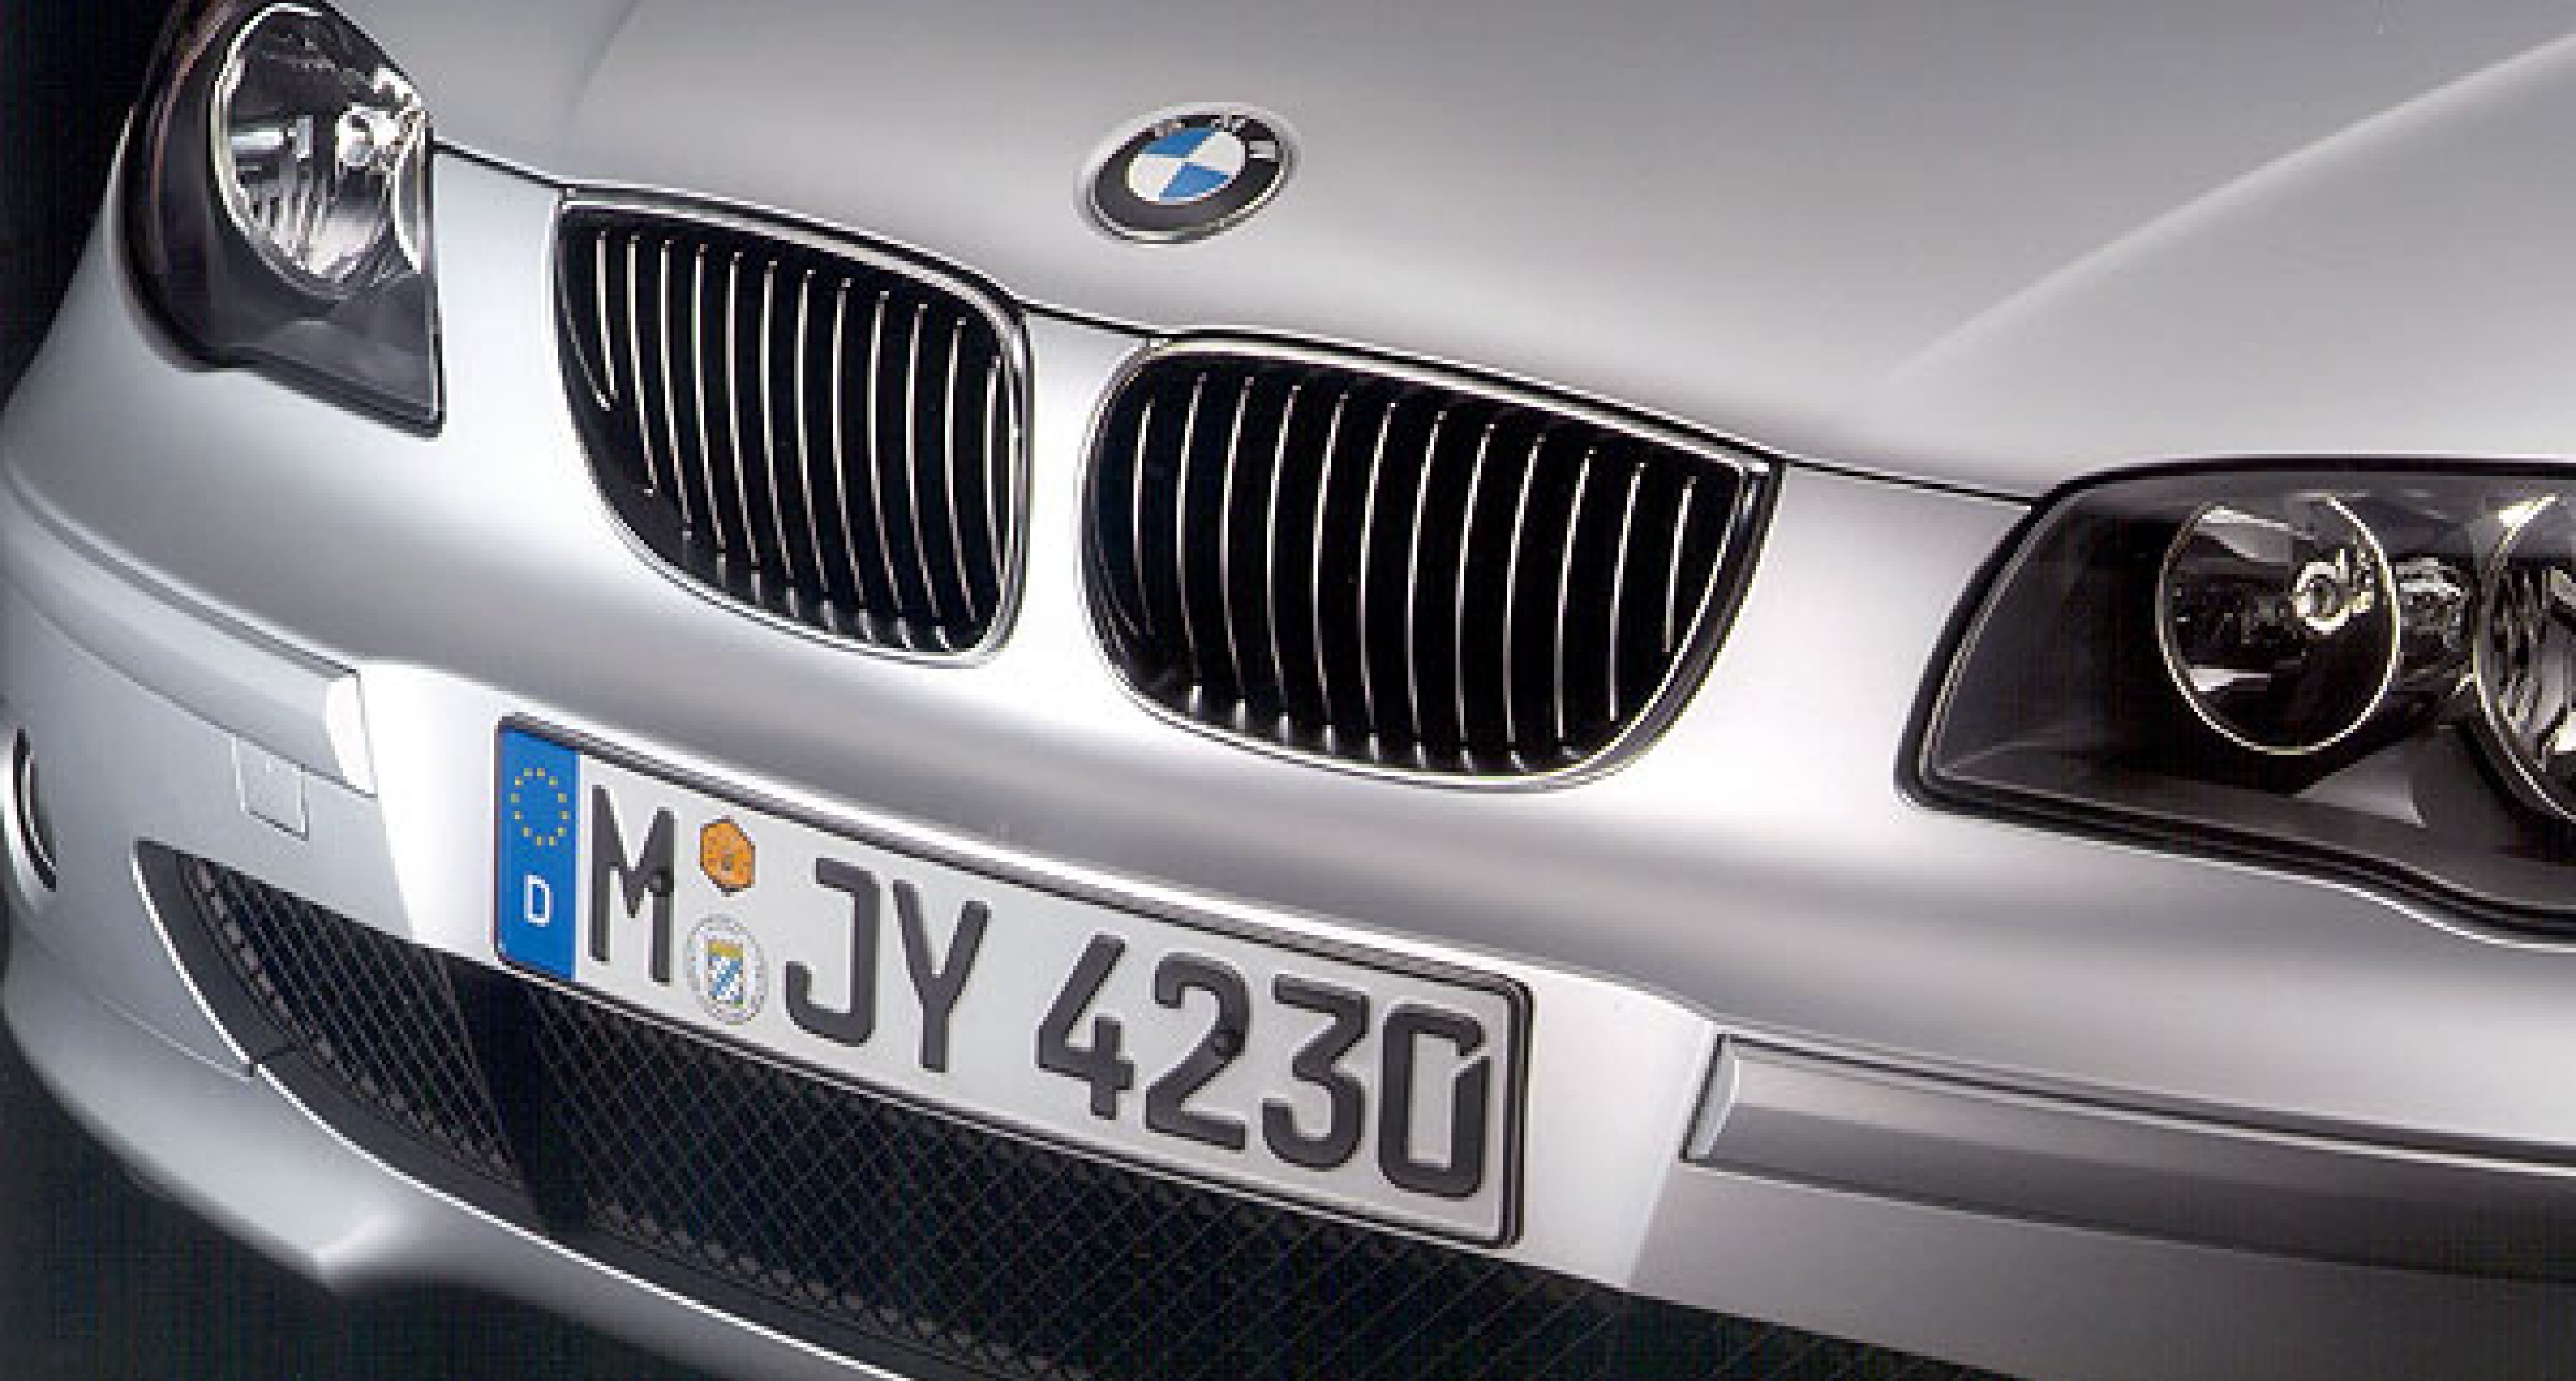 The new BMW 130i